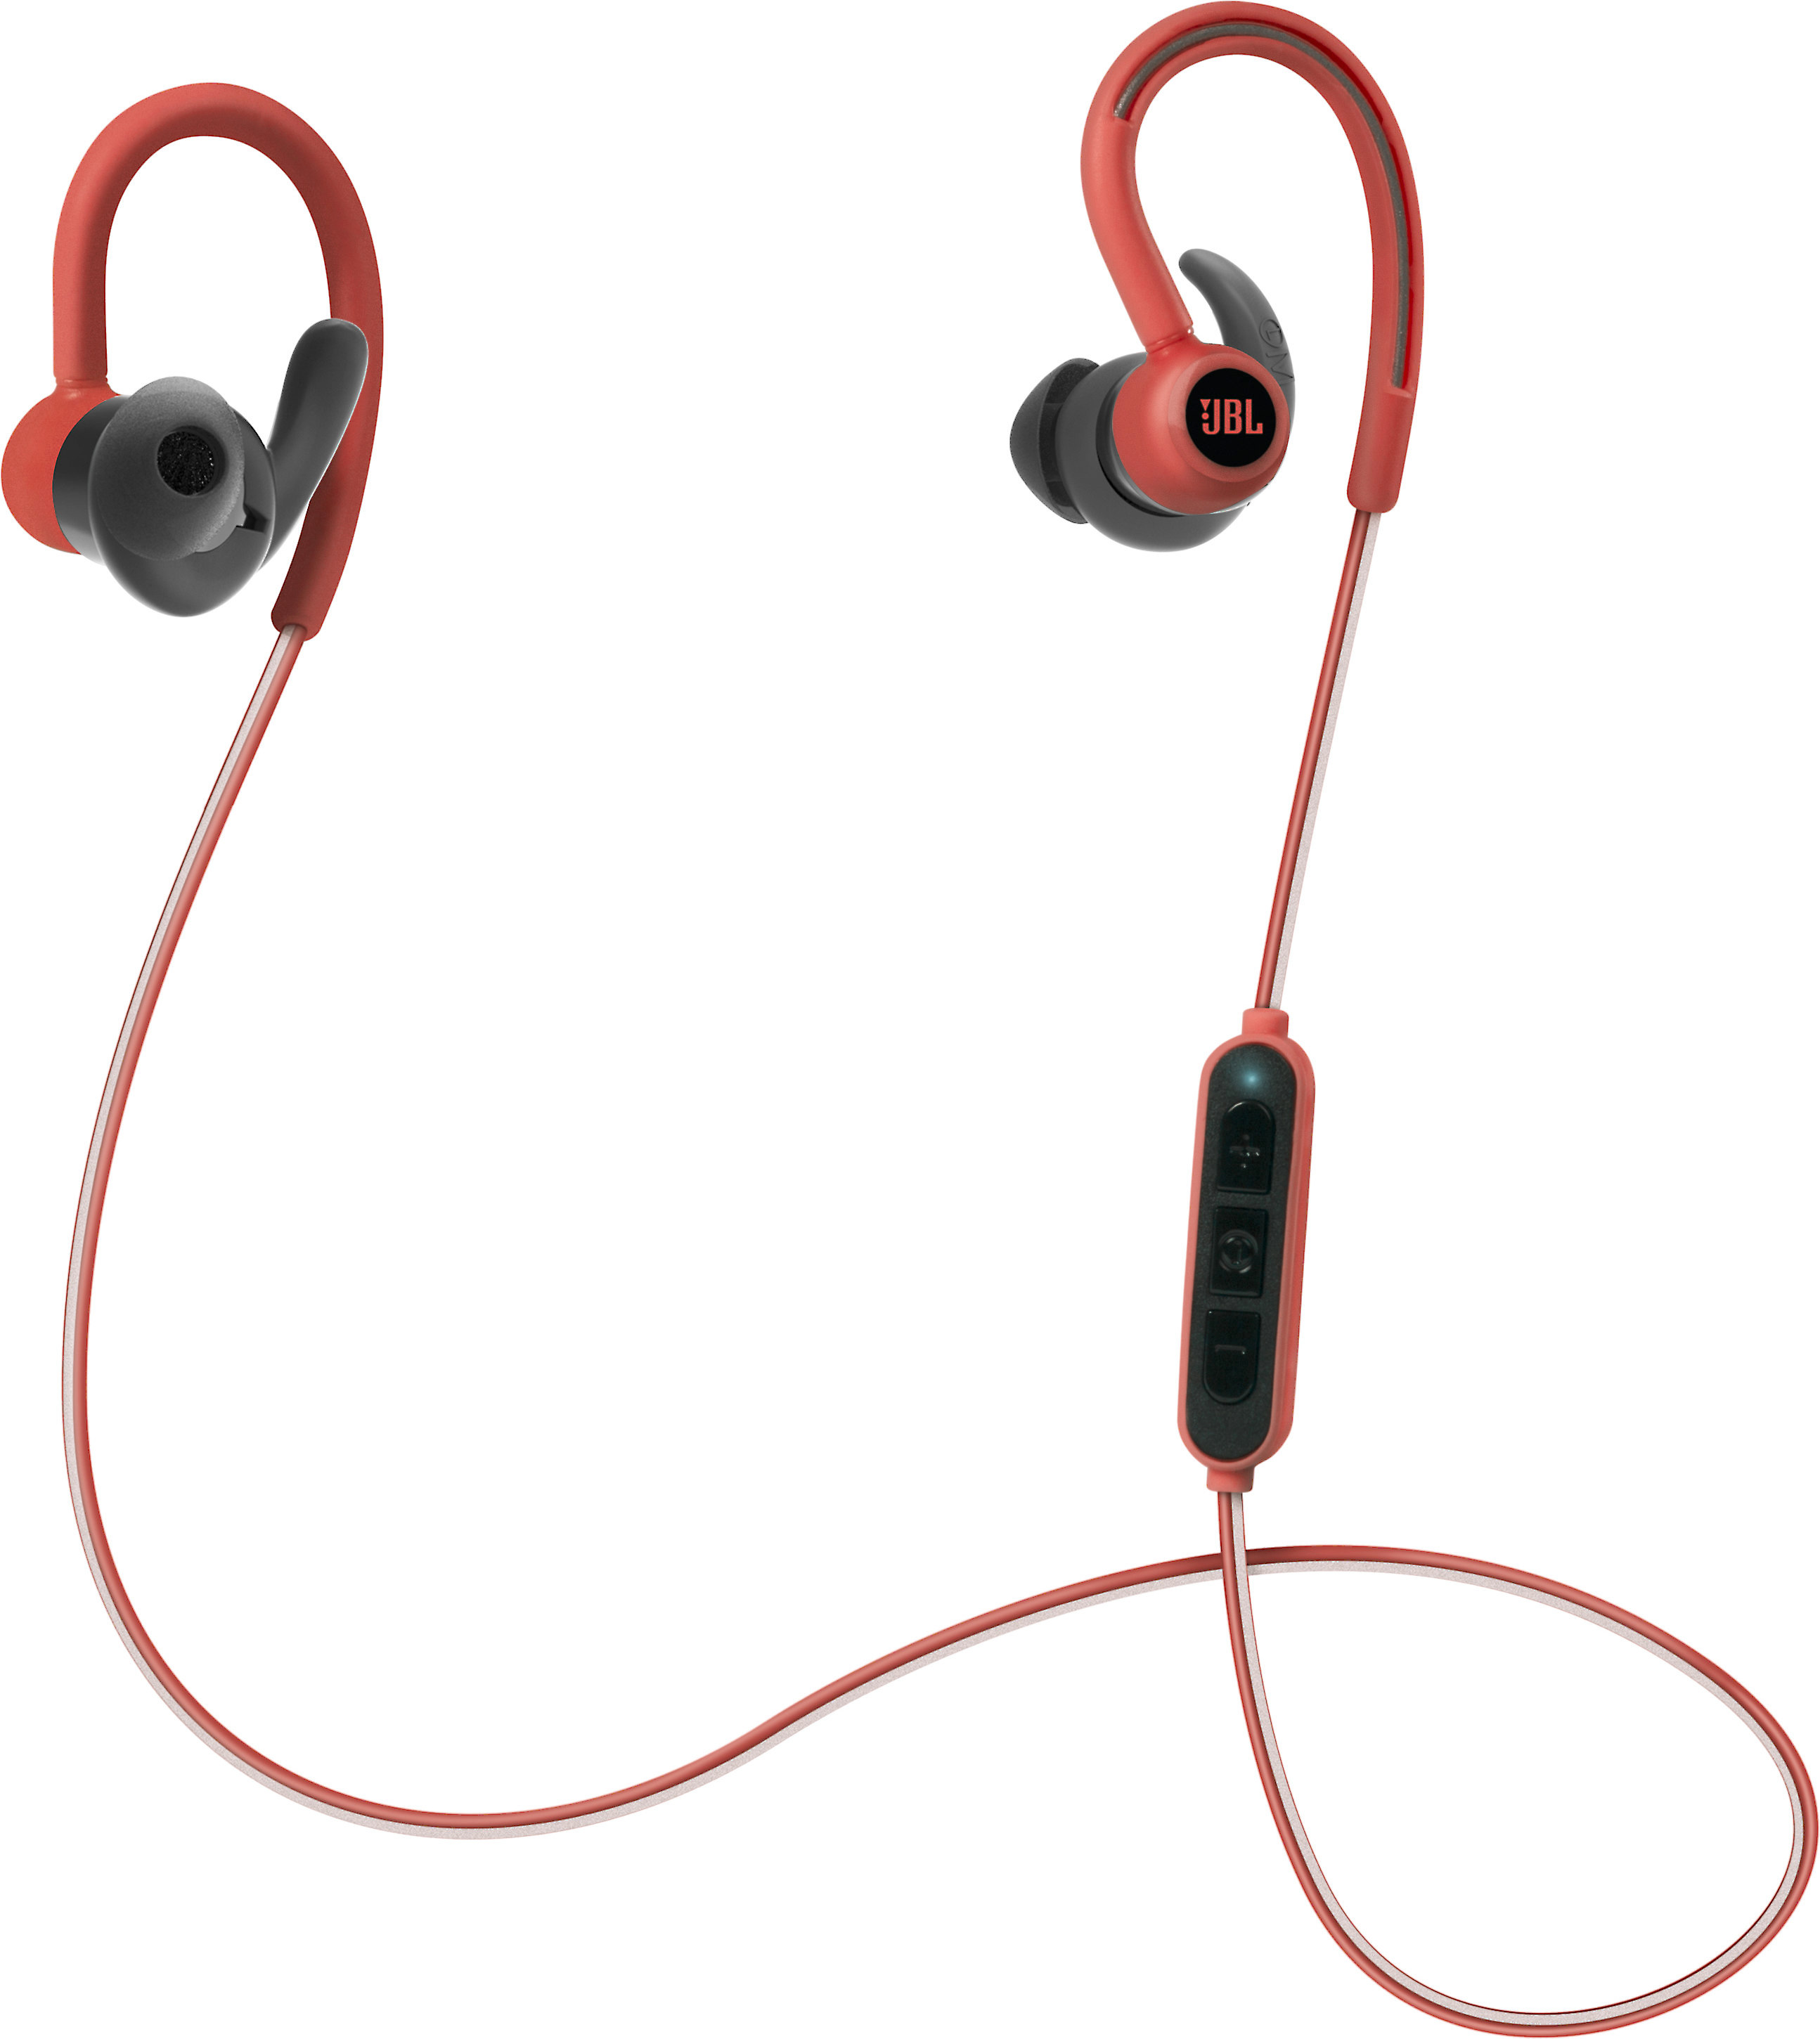 893565b3246 JBL Reflect Contour (Red) Behind-the-ear wireless Bluetooth® sports  headphones at Crutchfield.com